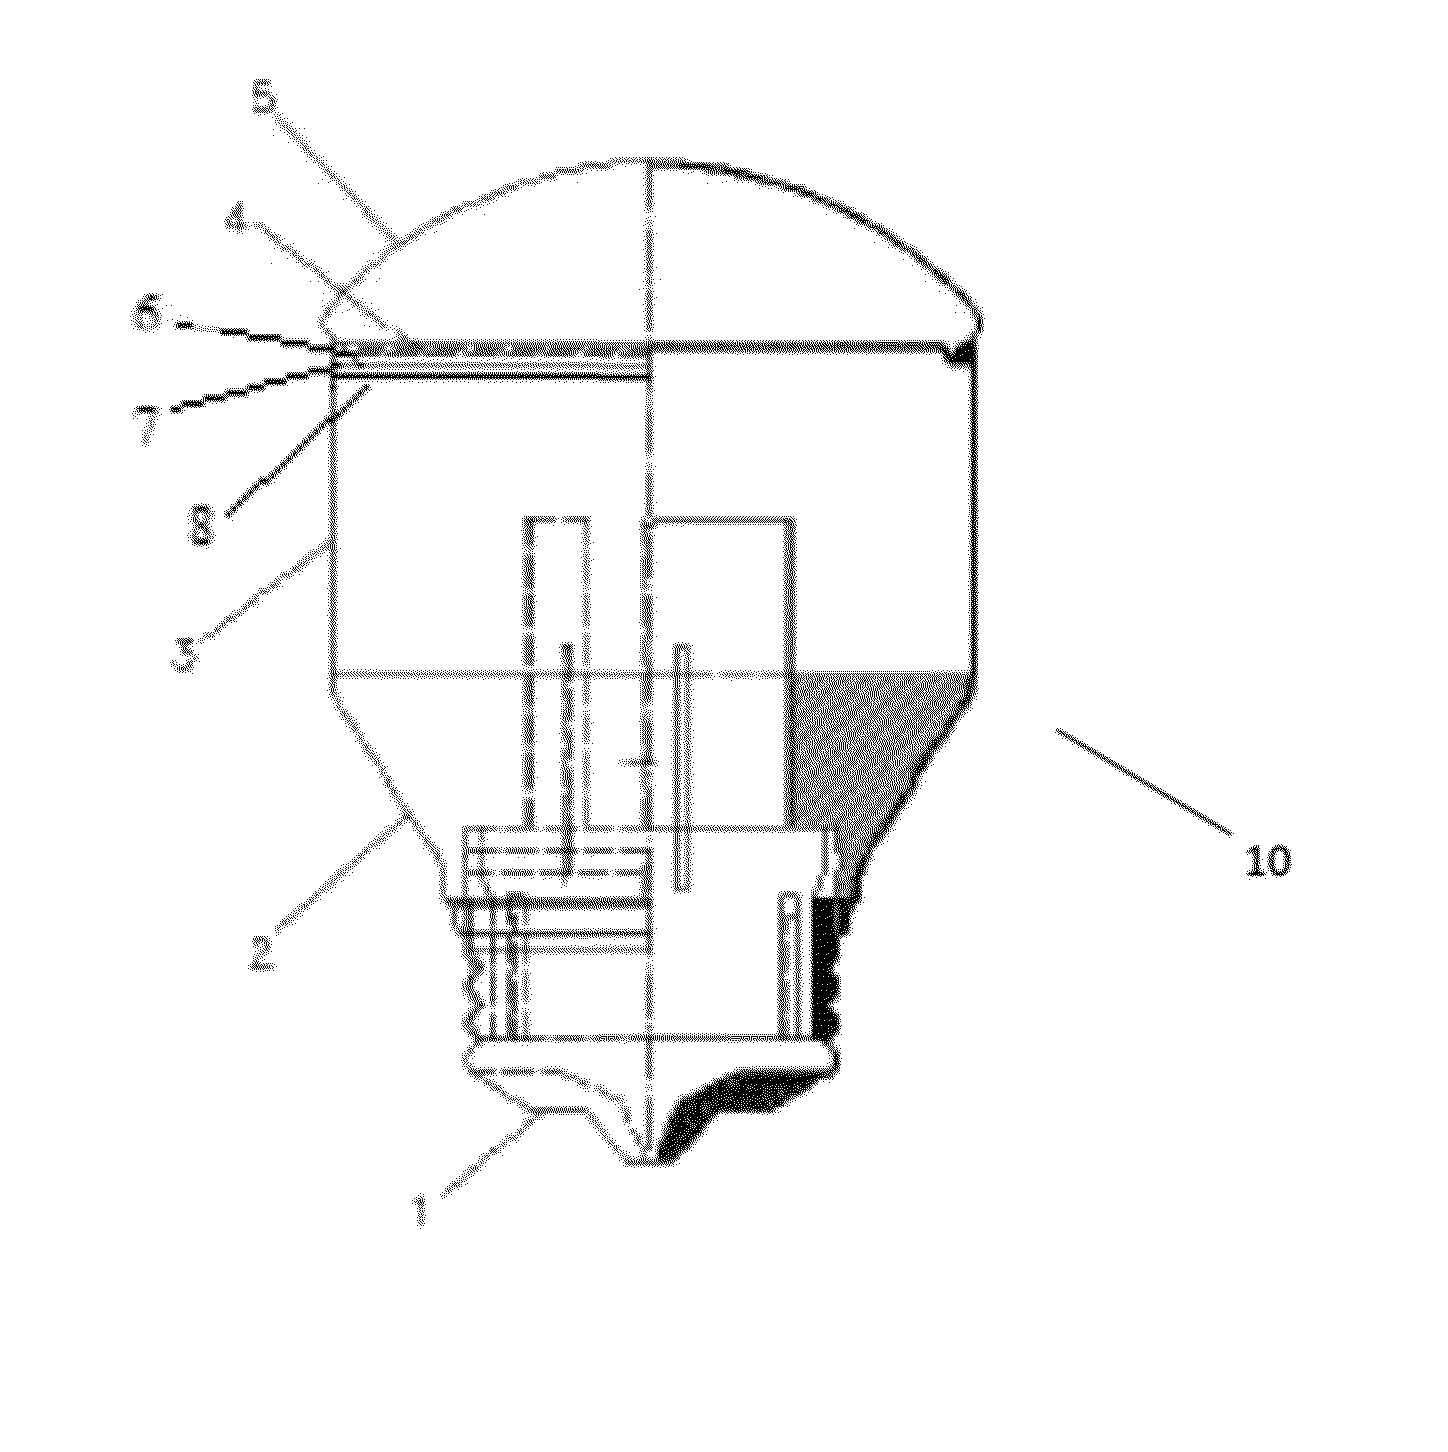 Brevet Us8310139 Led Lamps Using Recycled Metal Containers As Heat Recycledcircuitboardlamp Patent Drawing